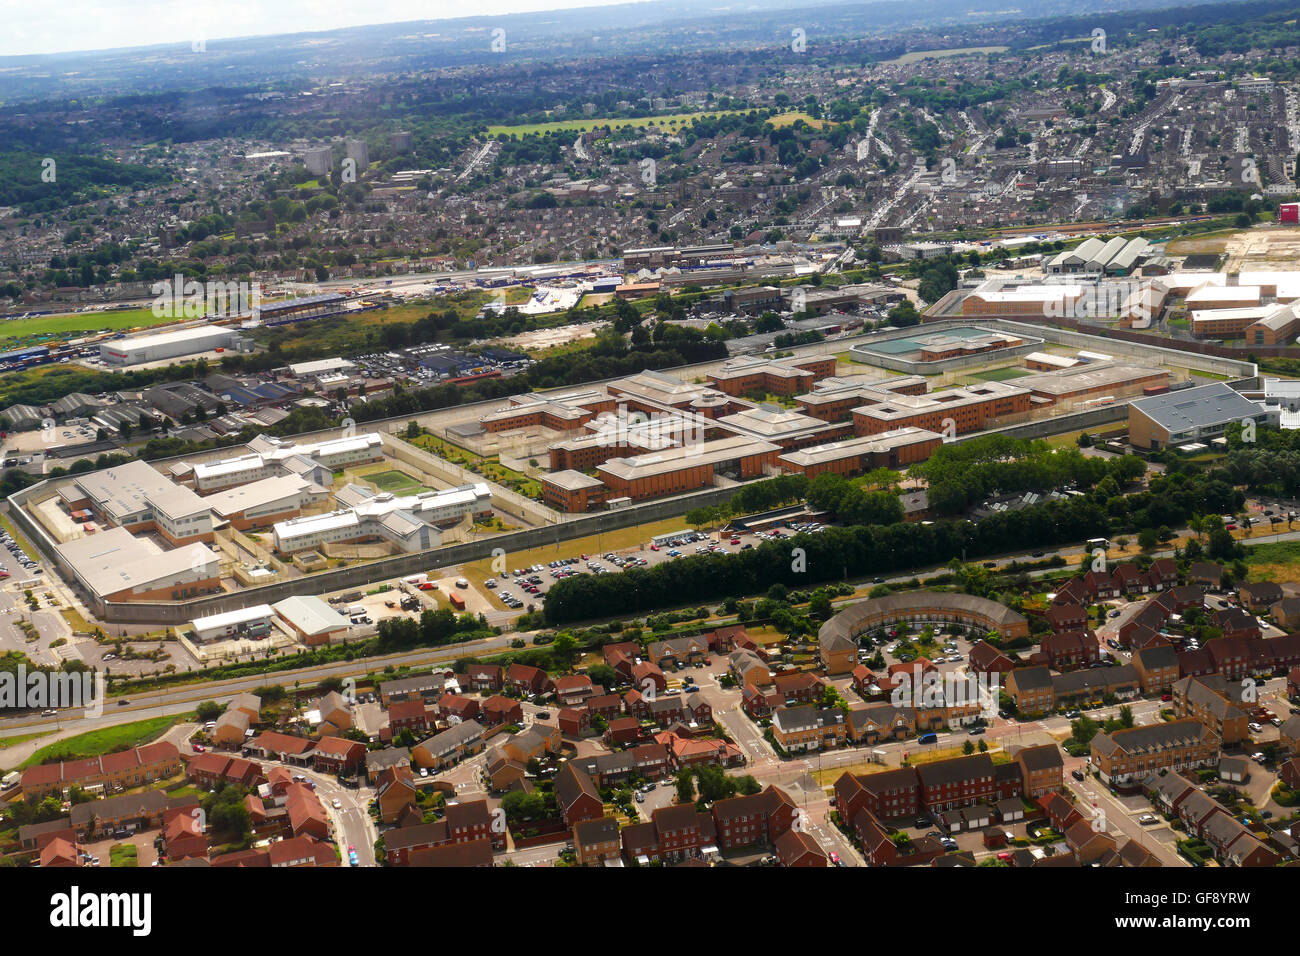 HM Prison Belmarsh, a category A mens prison in Thamesmeade, south east London from aeropane landing at City Airport - Stock Image